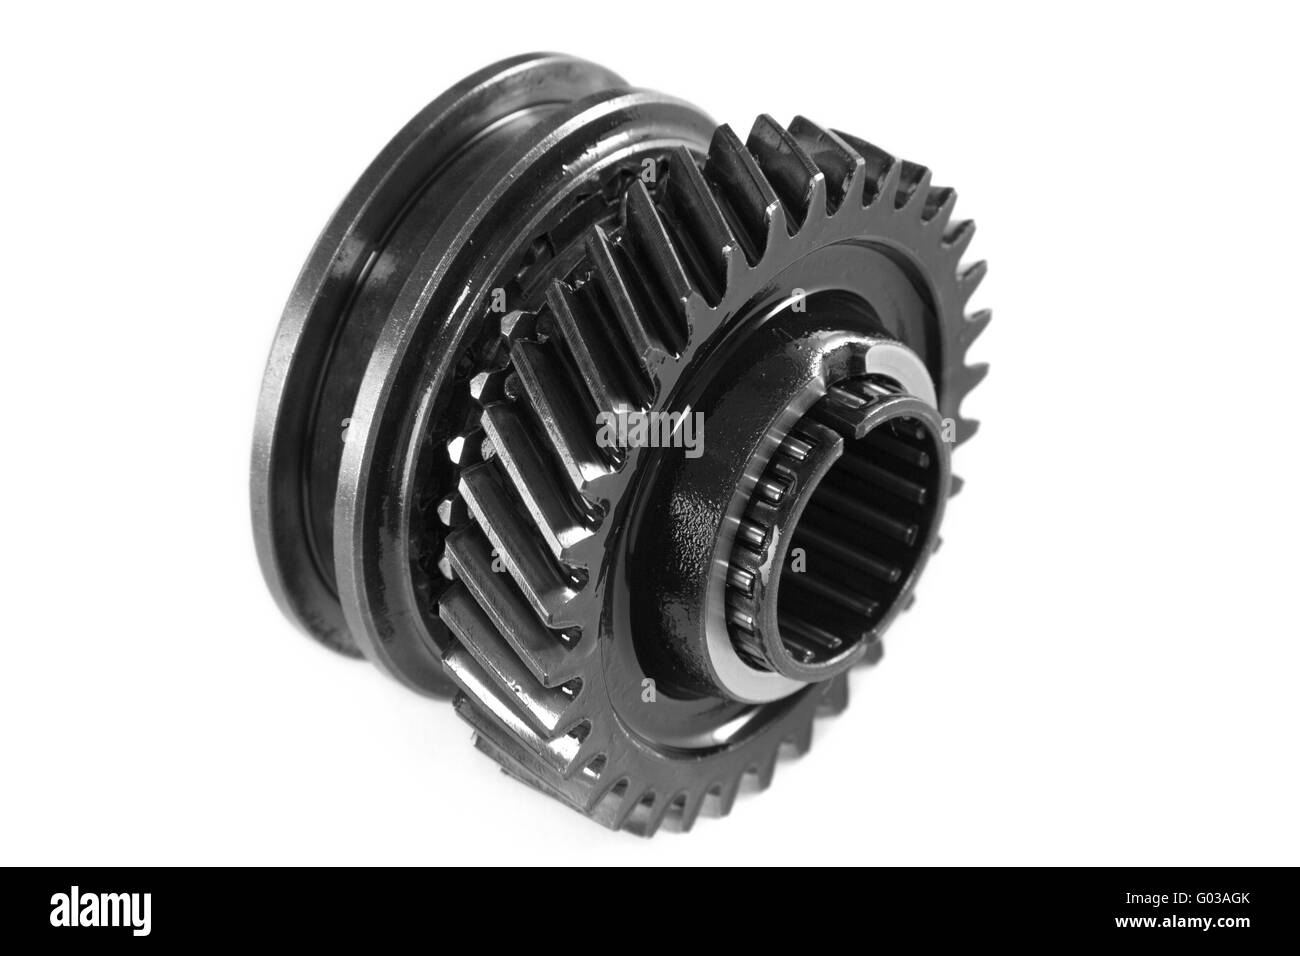 Metallic gear, isolated, on a white background - Stock Image